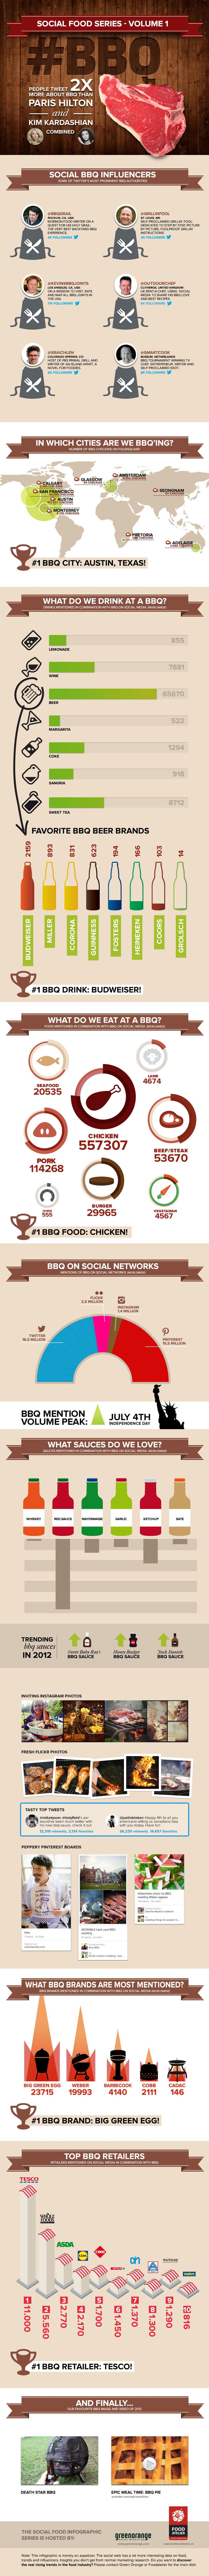 social food series volume 1 bbq